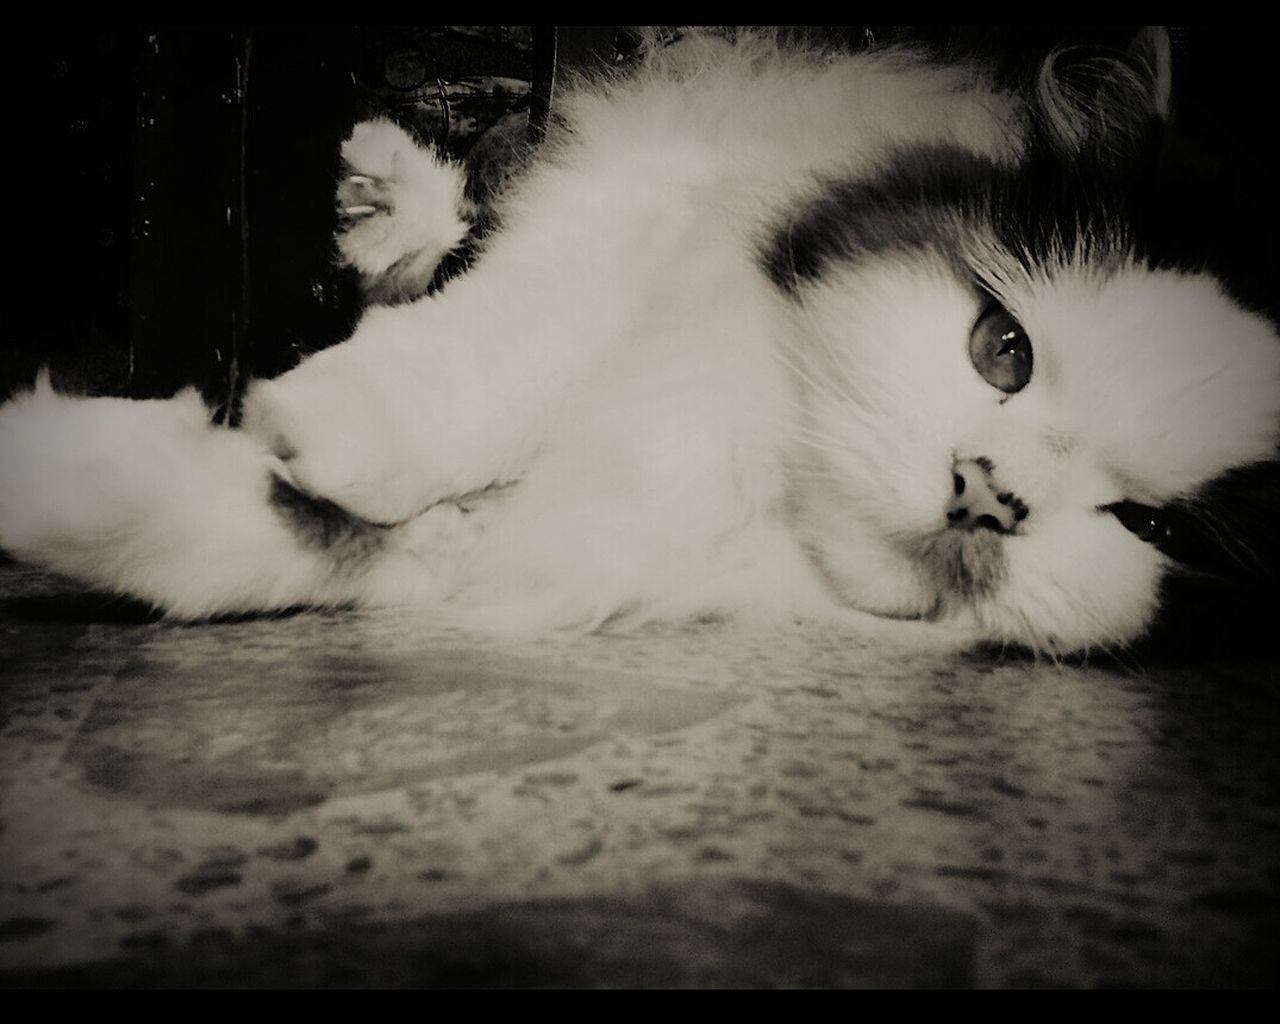 domestic cat, pets, domestic animals, animal themes, cat, indoors, feline, one animal, mammal, no people, close-up, day